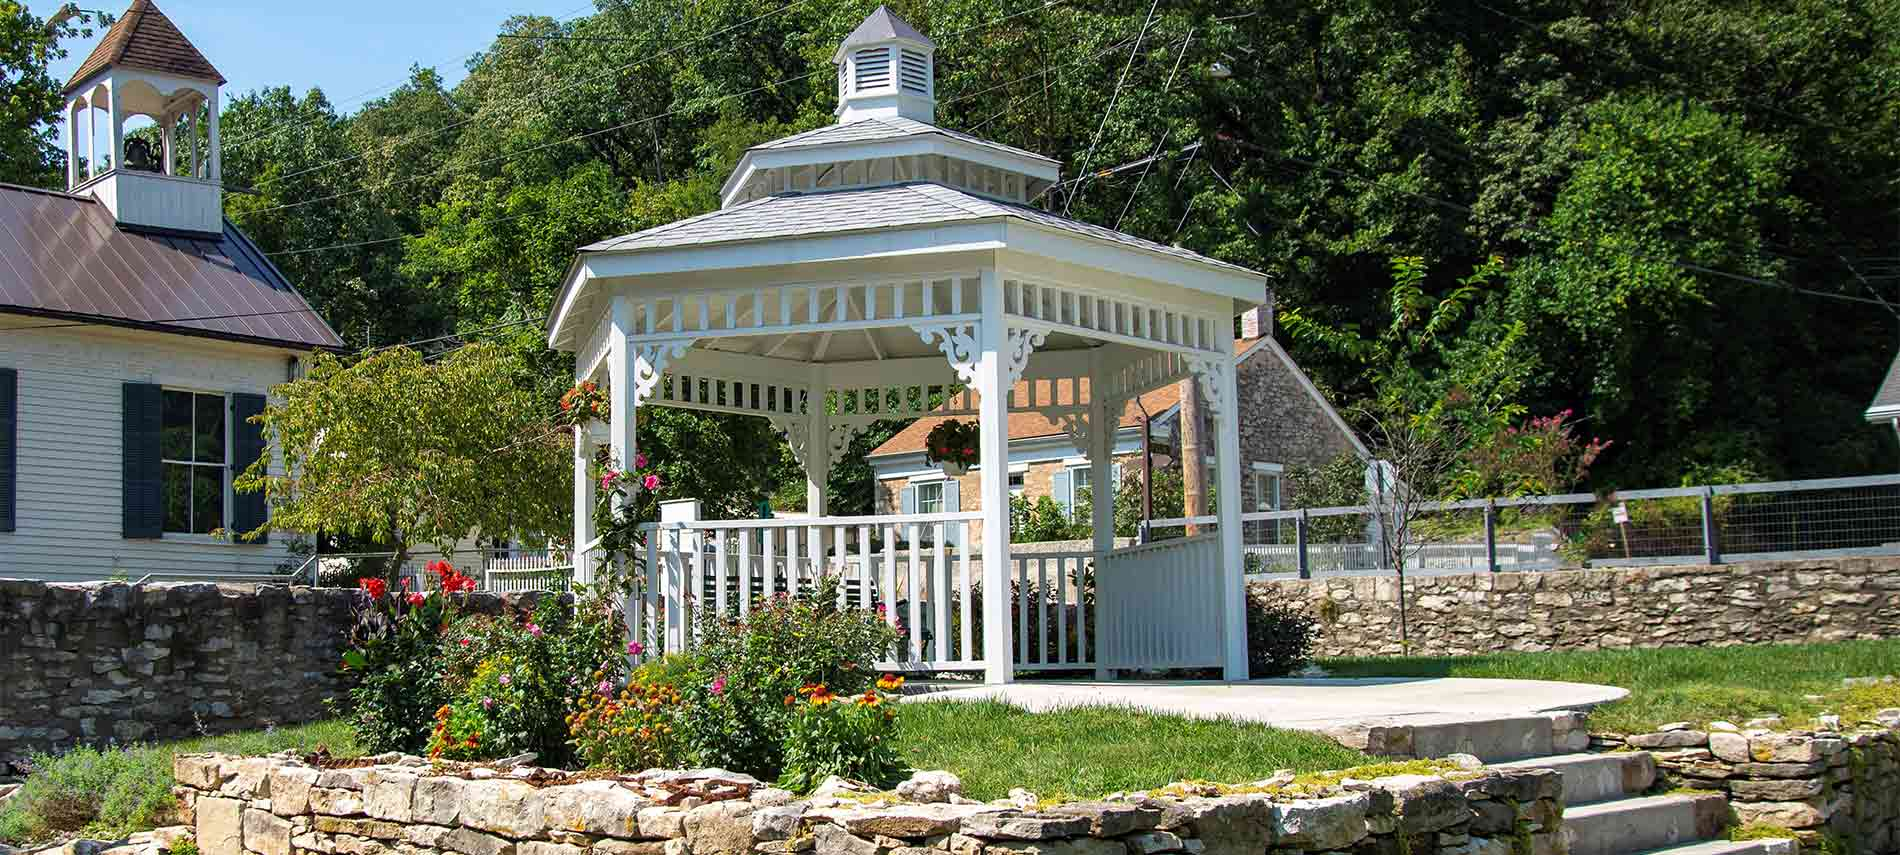 A stone lined raised gazebo with turret top and decorative sides outside the inn.